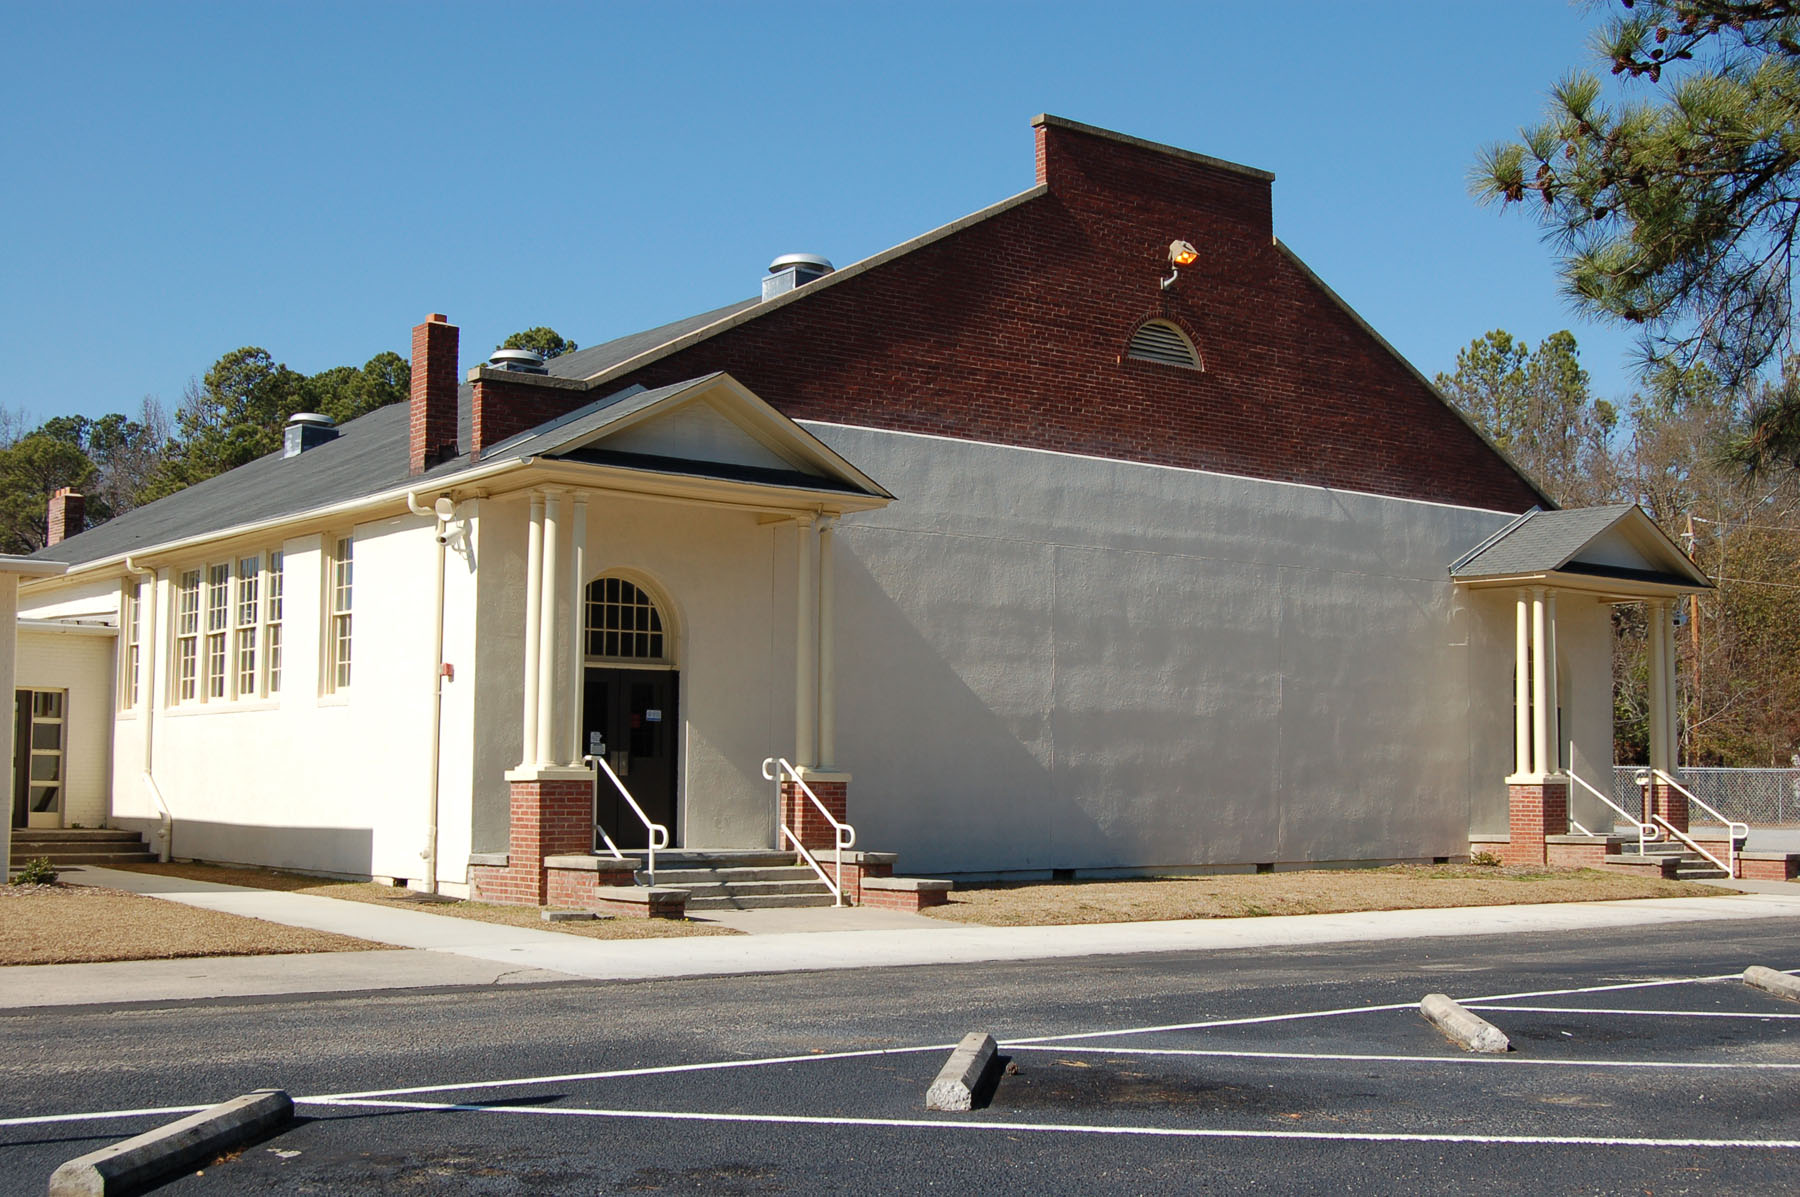 Blythewood School Gym built in 1938 by the WPA.  Photo by Jim McLean